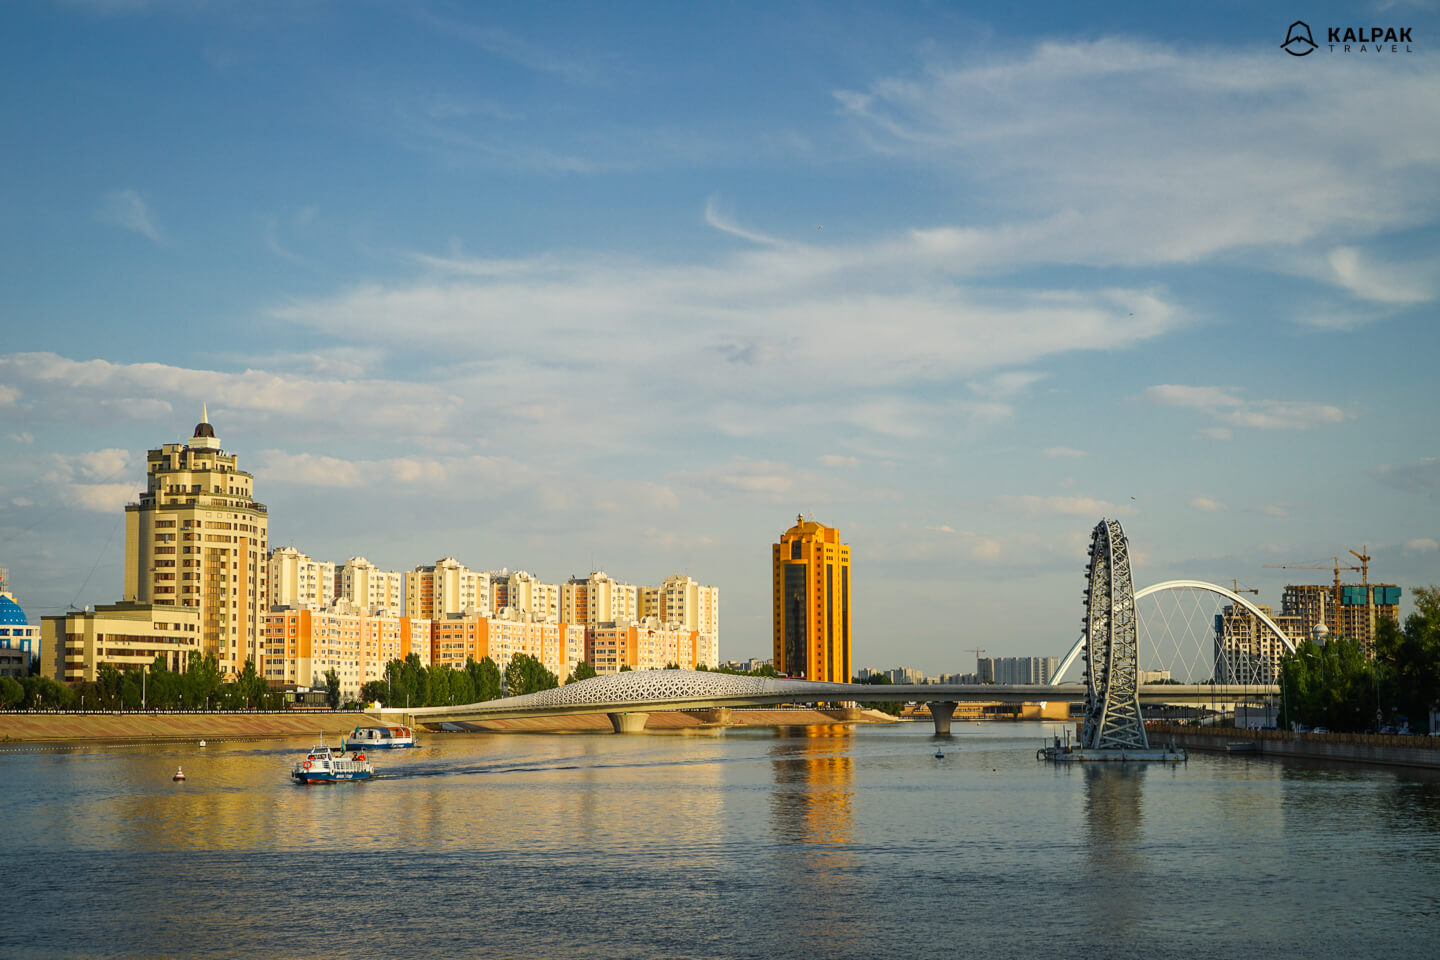 River Cruise on Esil River in Nur Sultan